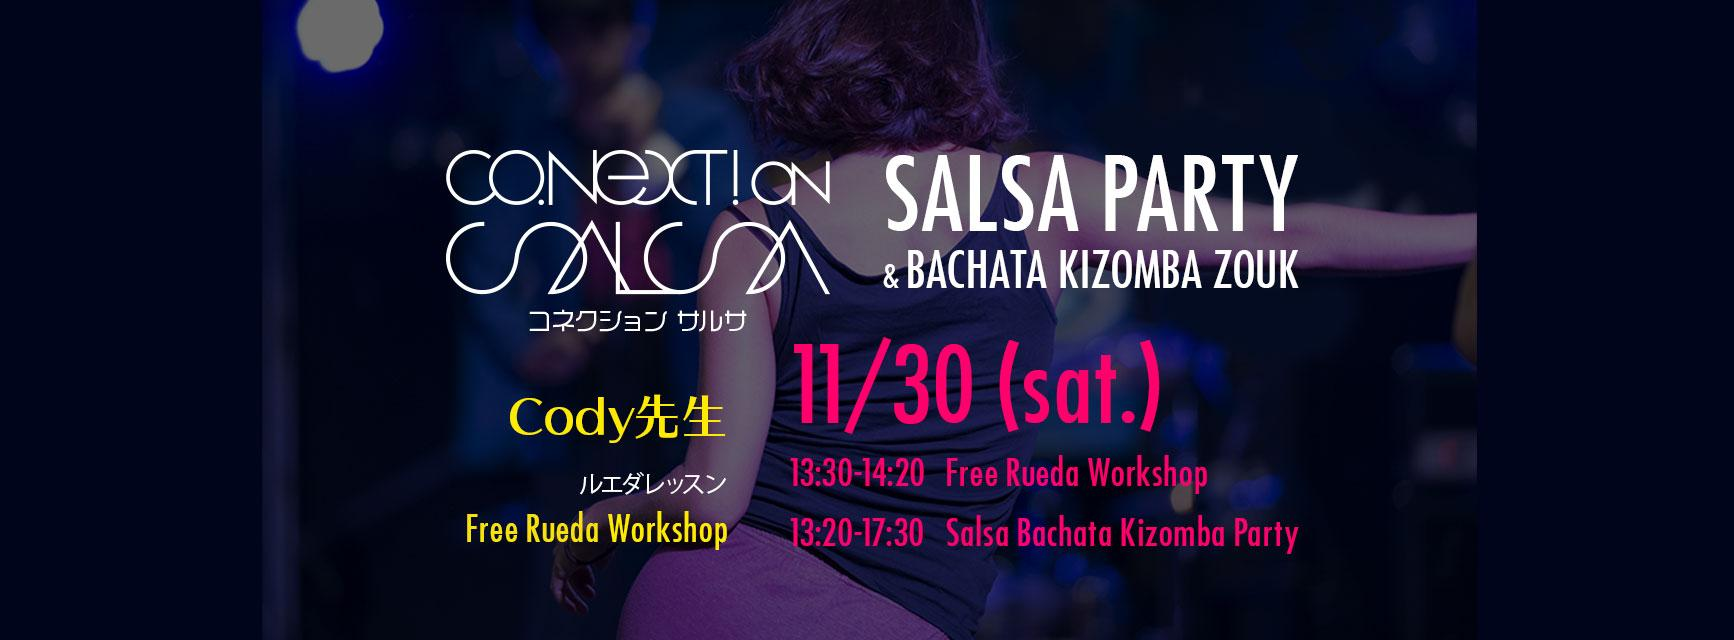 11/30 sat. CO.NEXT!on SALSA - Salsa Party(コネクションサルサ パーティー in 岡崎)